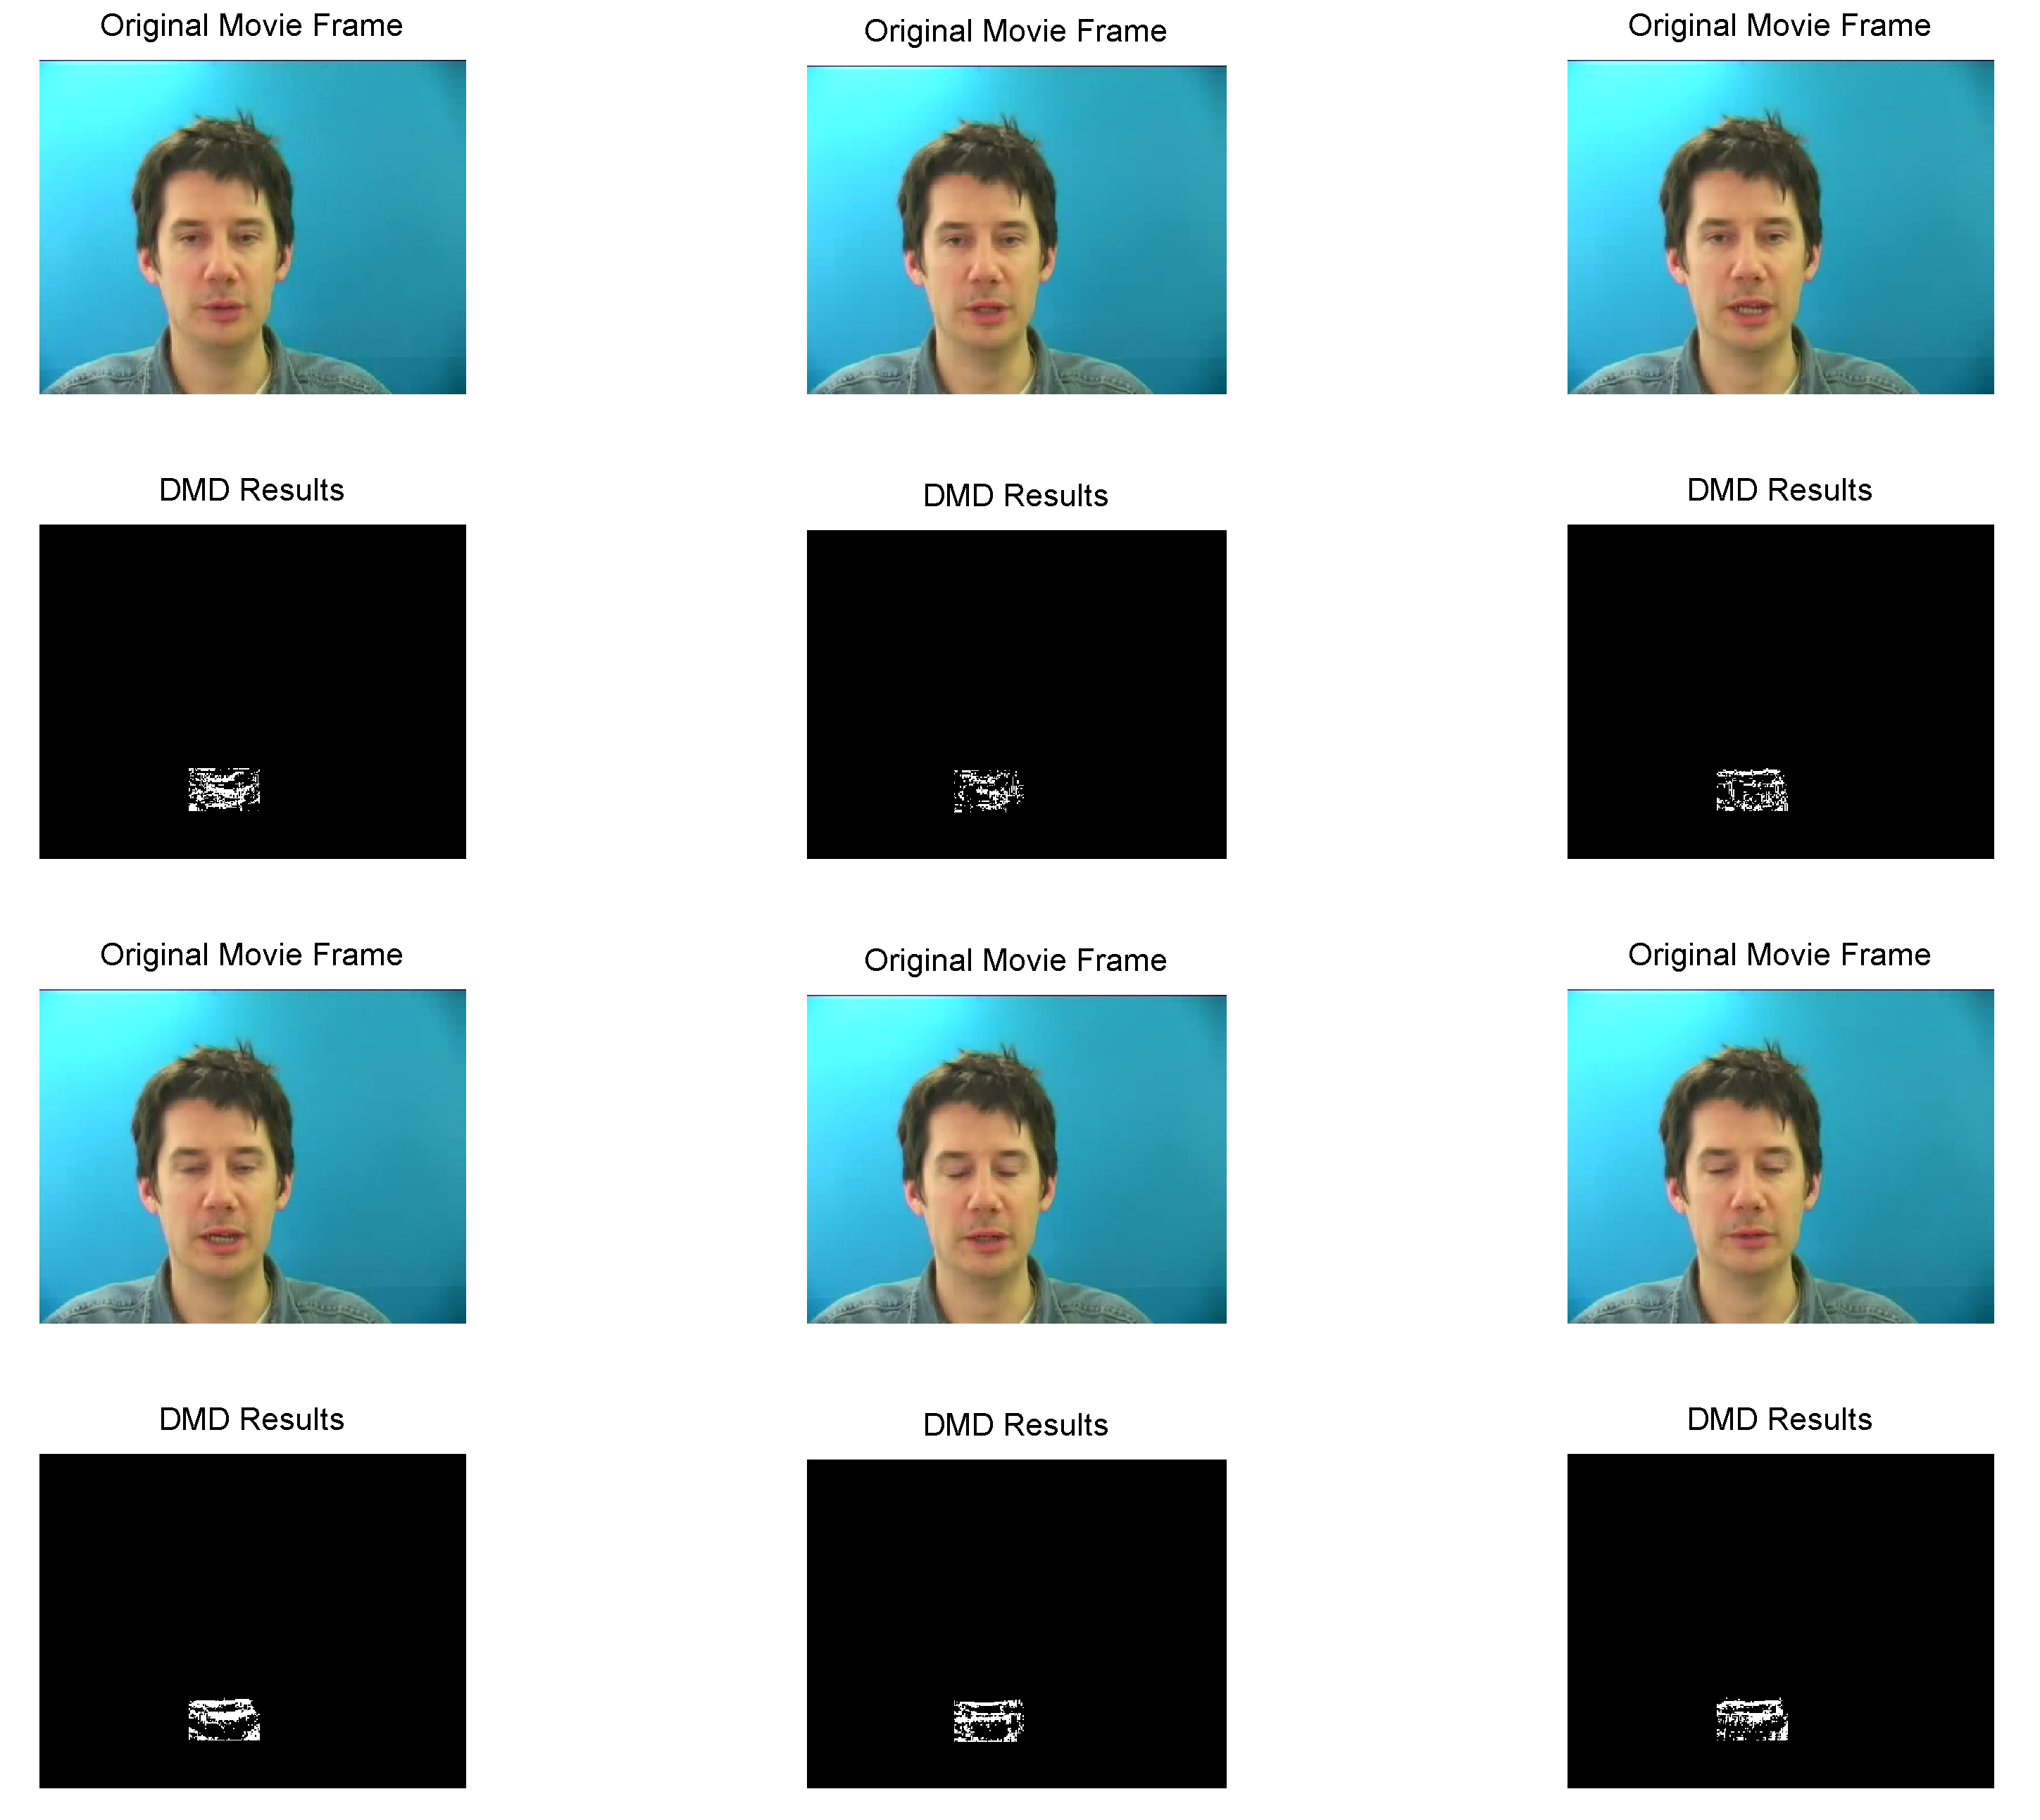 DMD results for selected frames. DMD is not ideal in this situation because the background (the man's face) is not completely stationary.